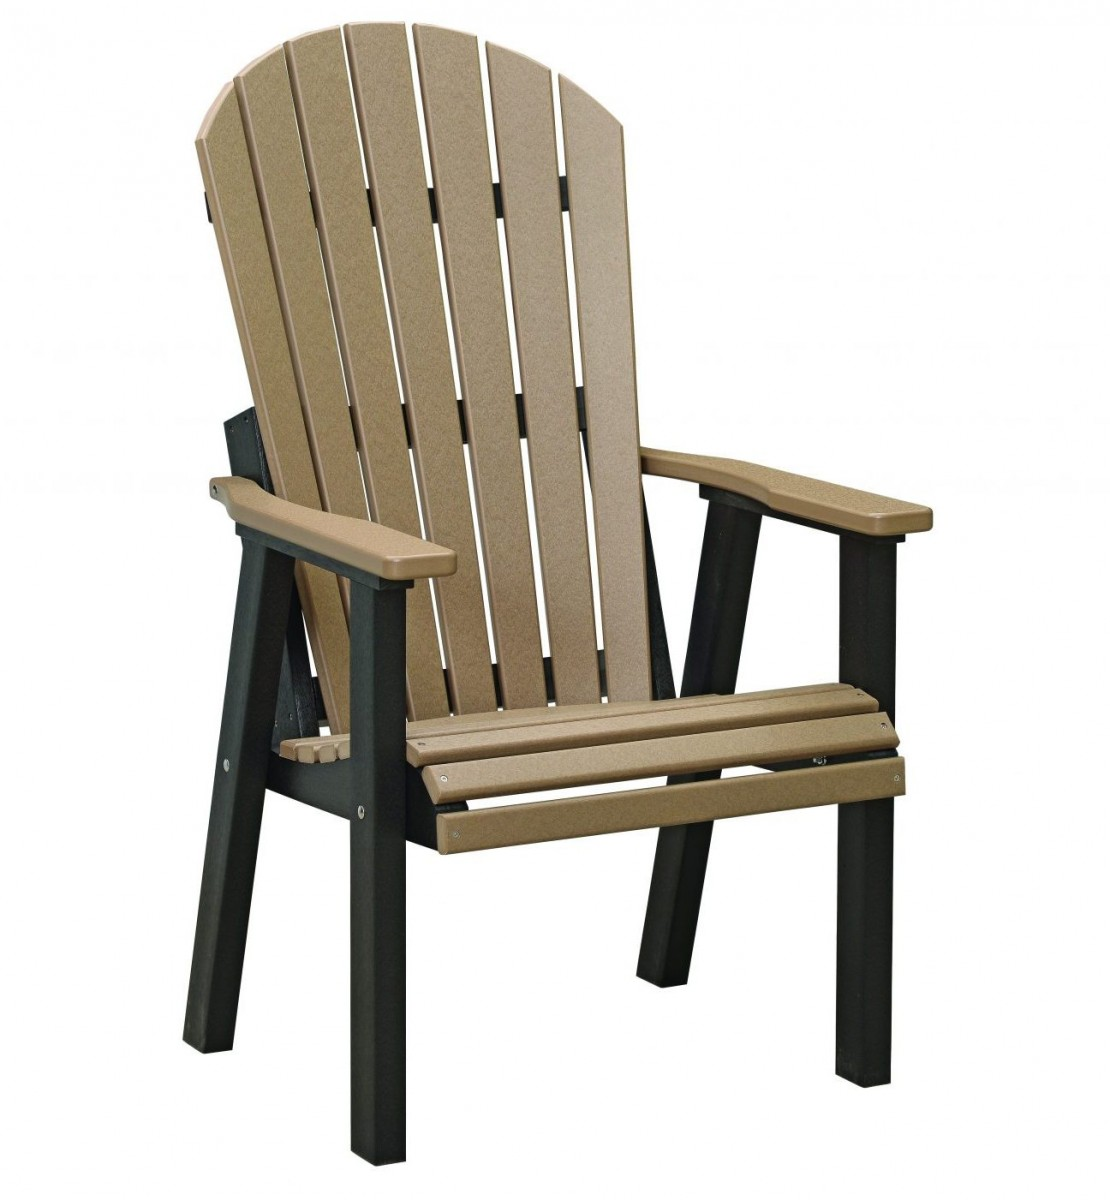 Berlin Gardens Comfo-Back Natural Finish Deck Chair